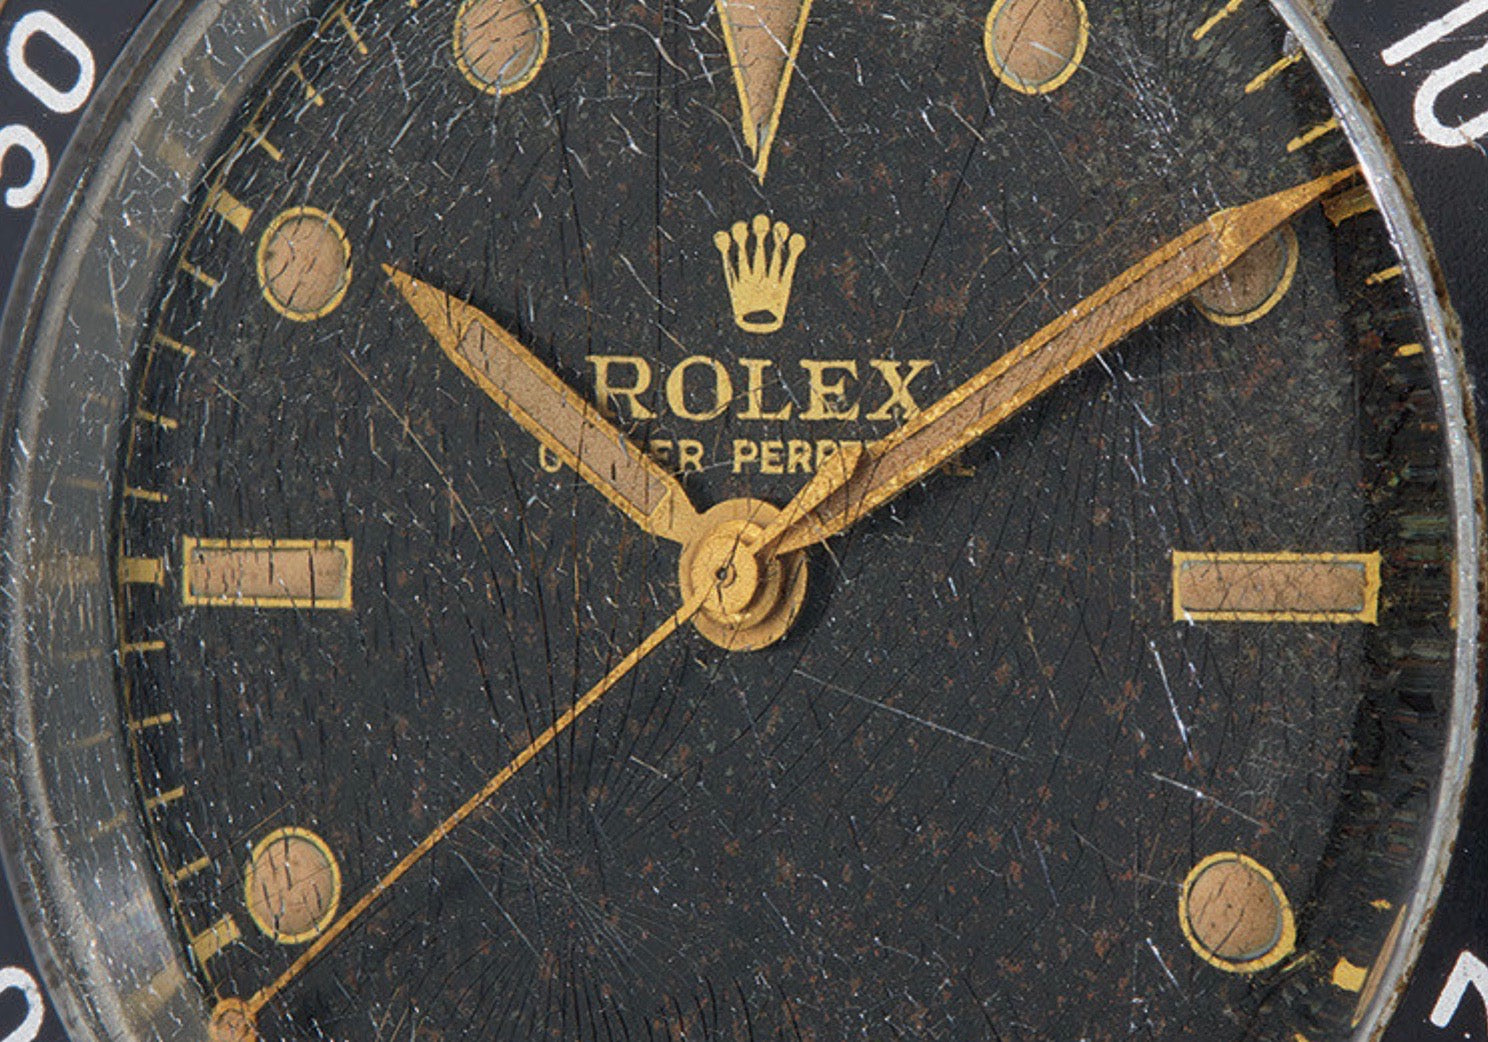 1954 Rolex Submariner with a cracked crystal and creamy lume plots sold at Phillips Game Changers auction